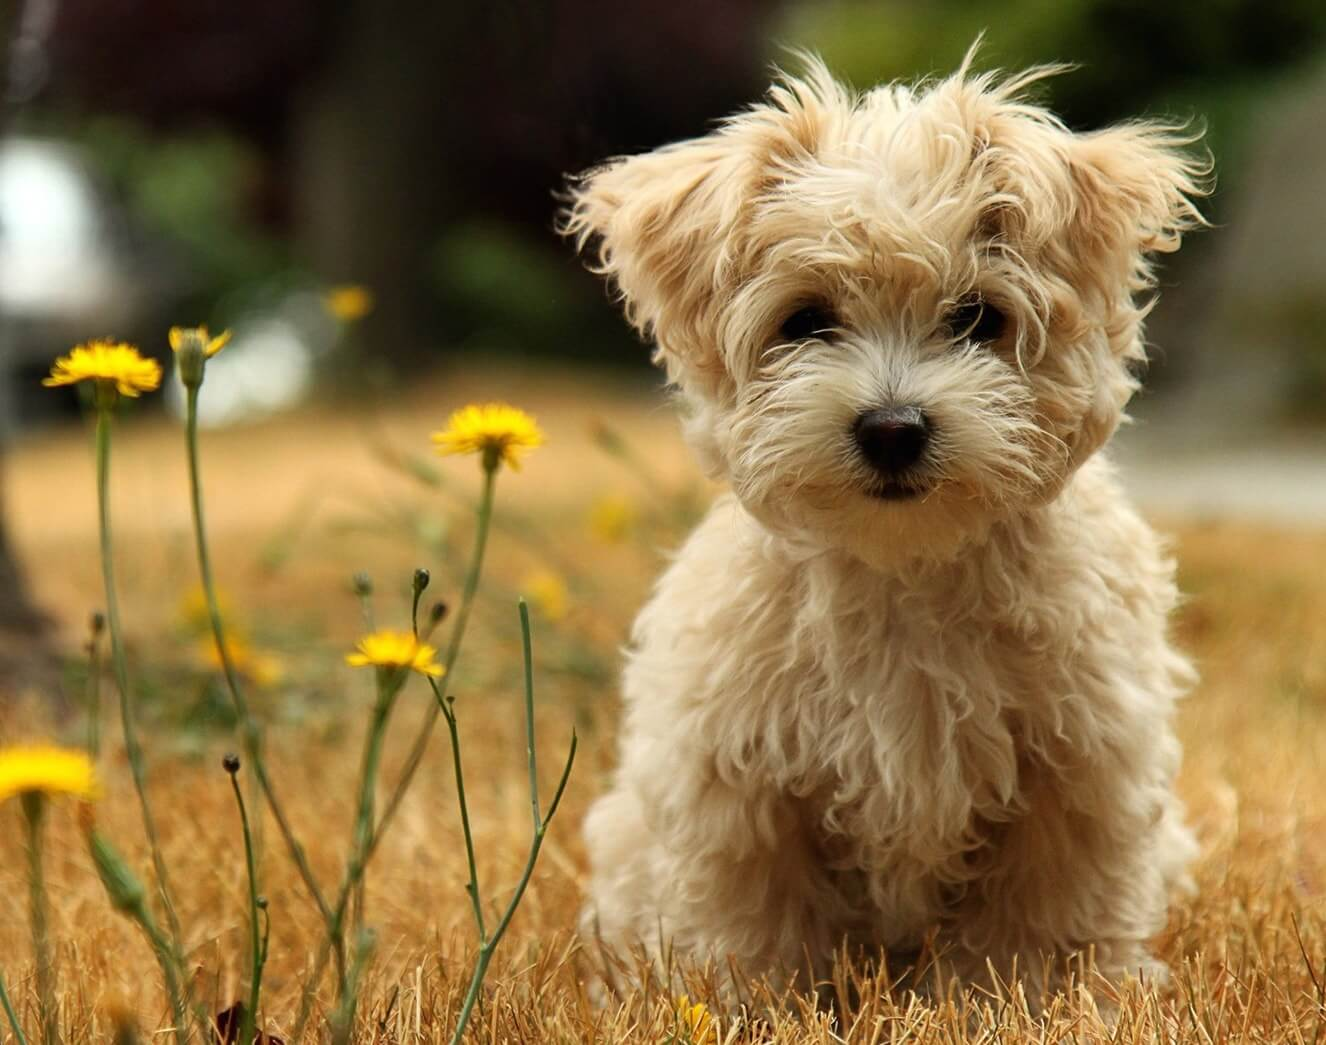 desktop images of a cute puppy dog wallpaper copy min